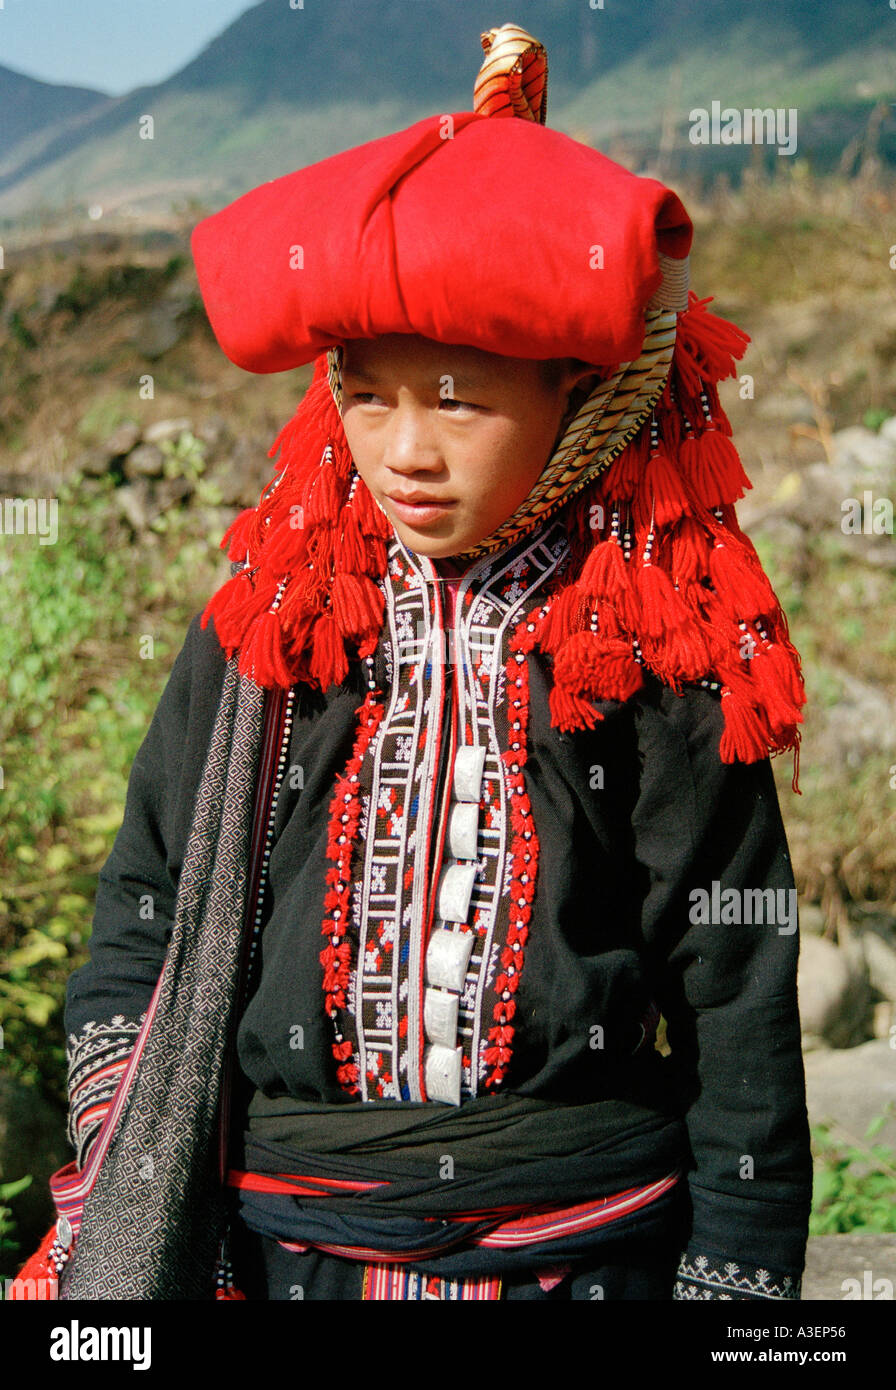 A Red Hmong woman from Sa Pa in Vietnam - Stock Image